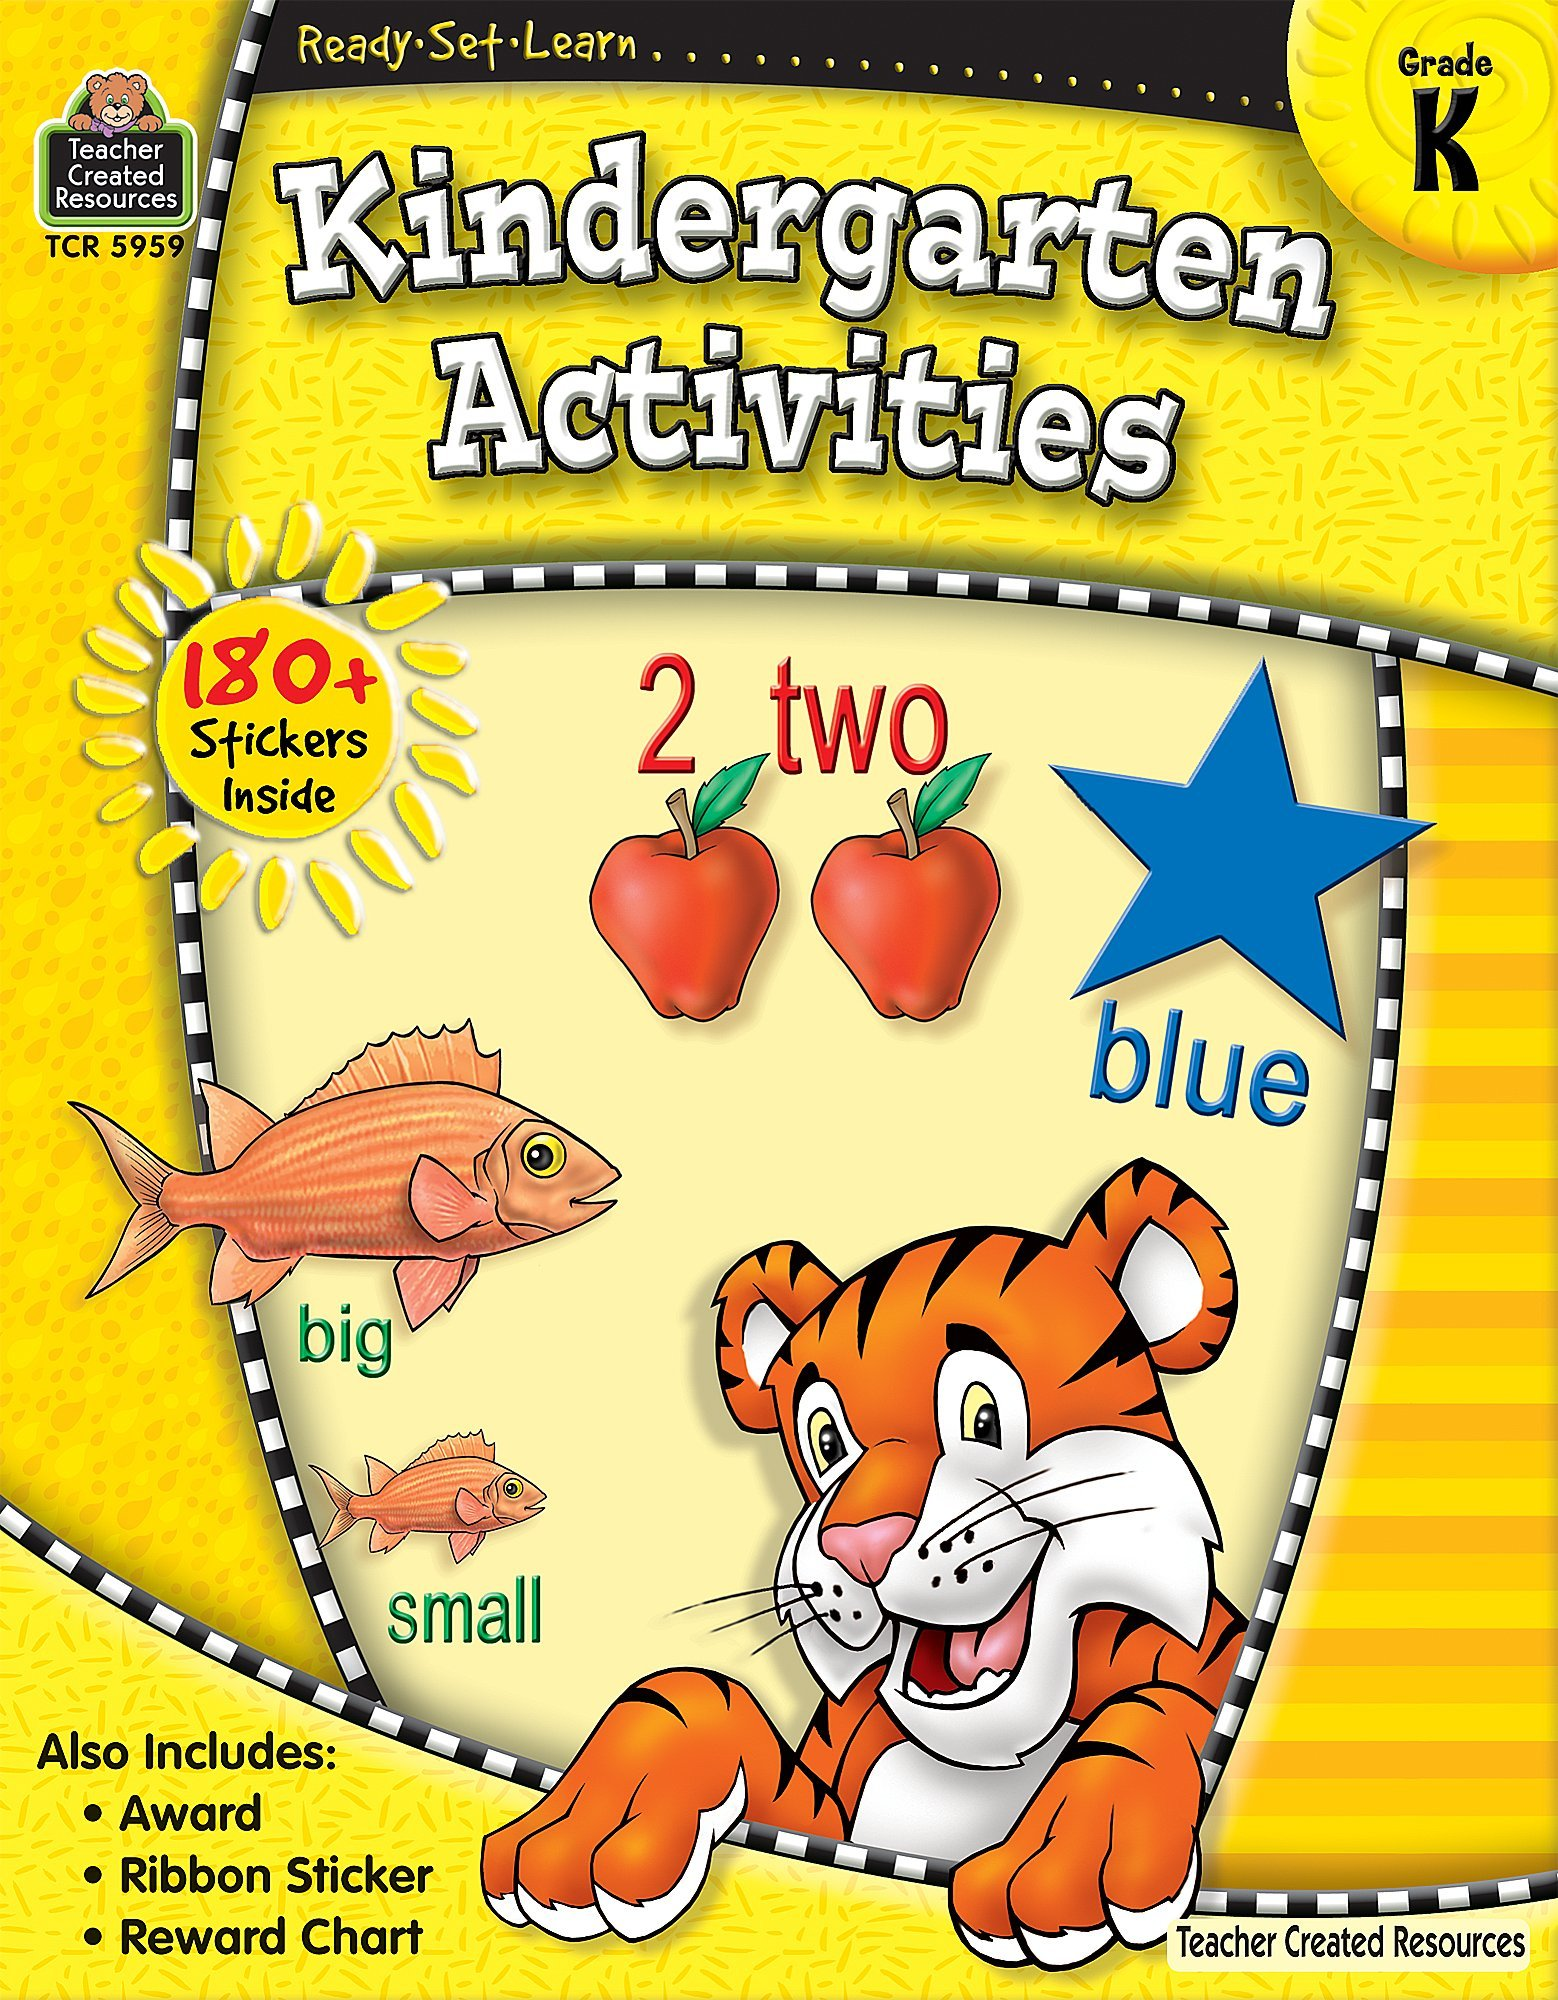 Ready Set Learn Kindergarten Activities Teacher Created Resources